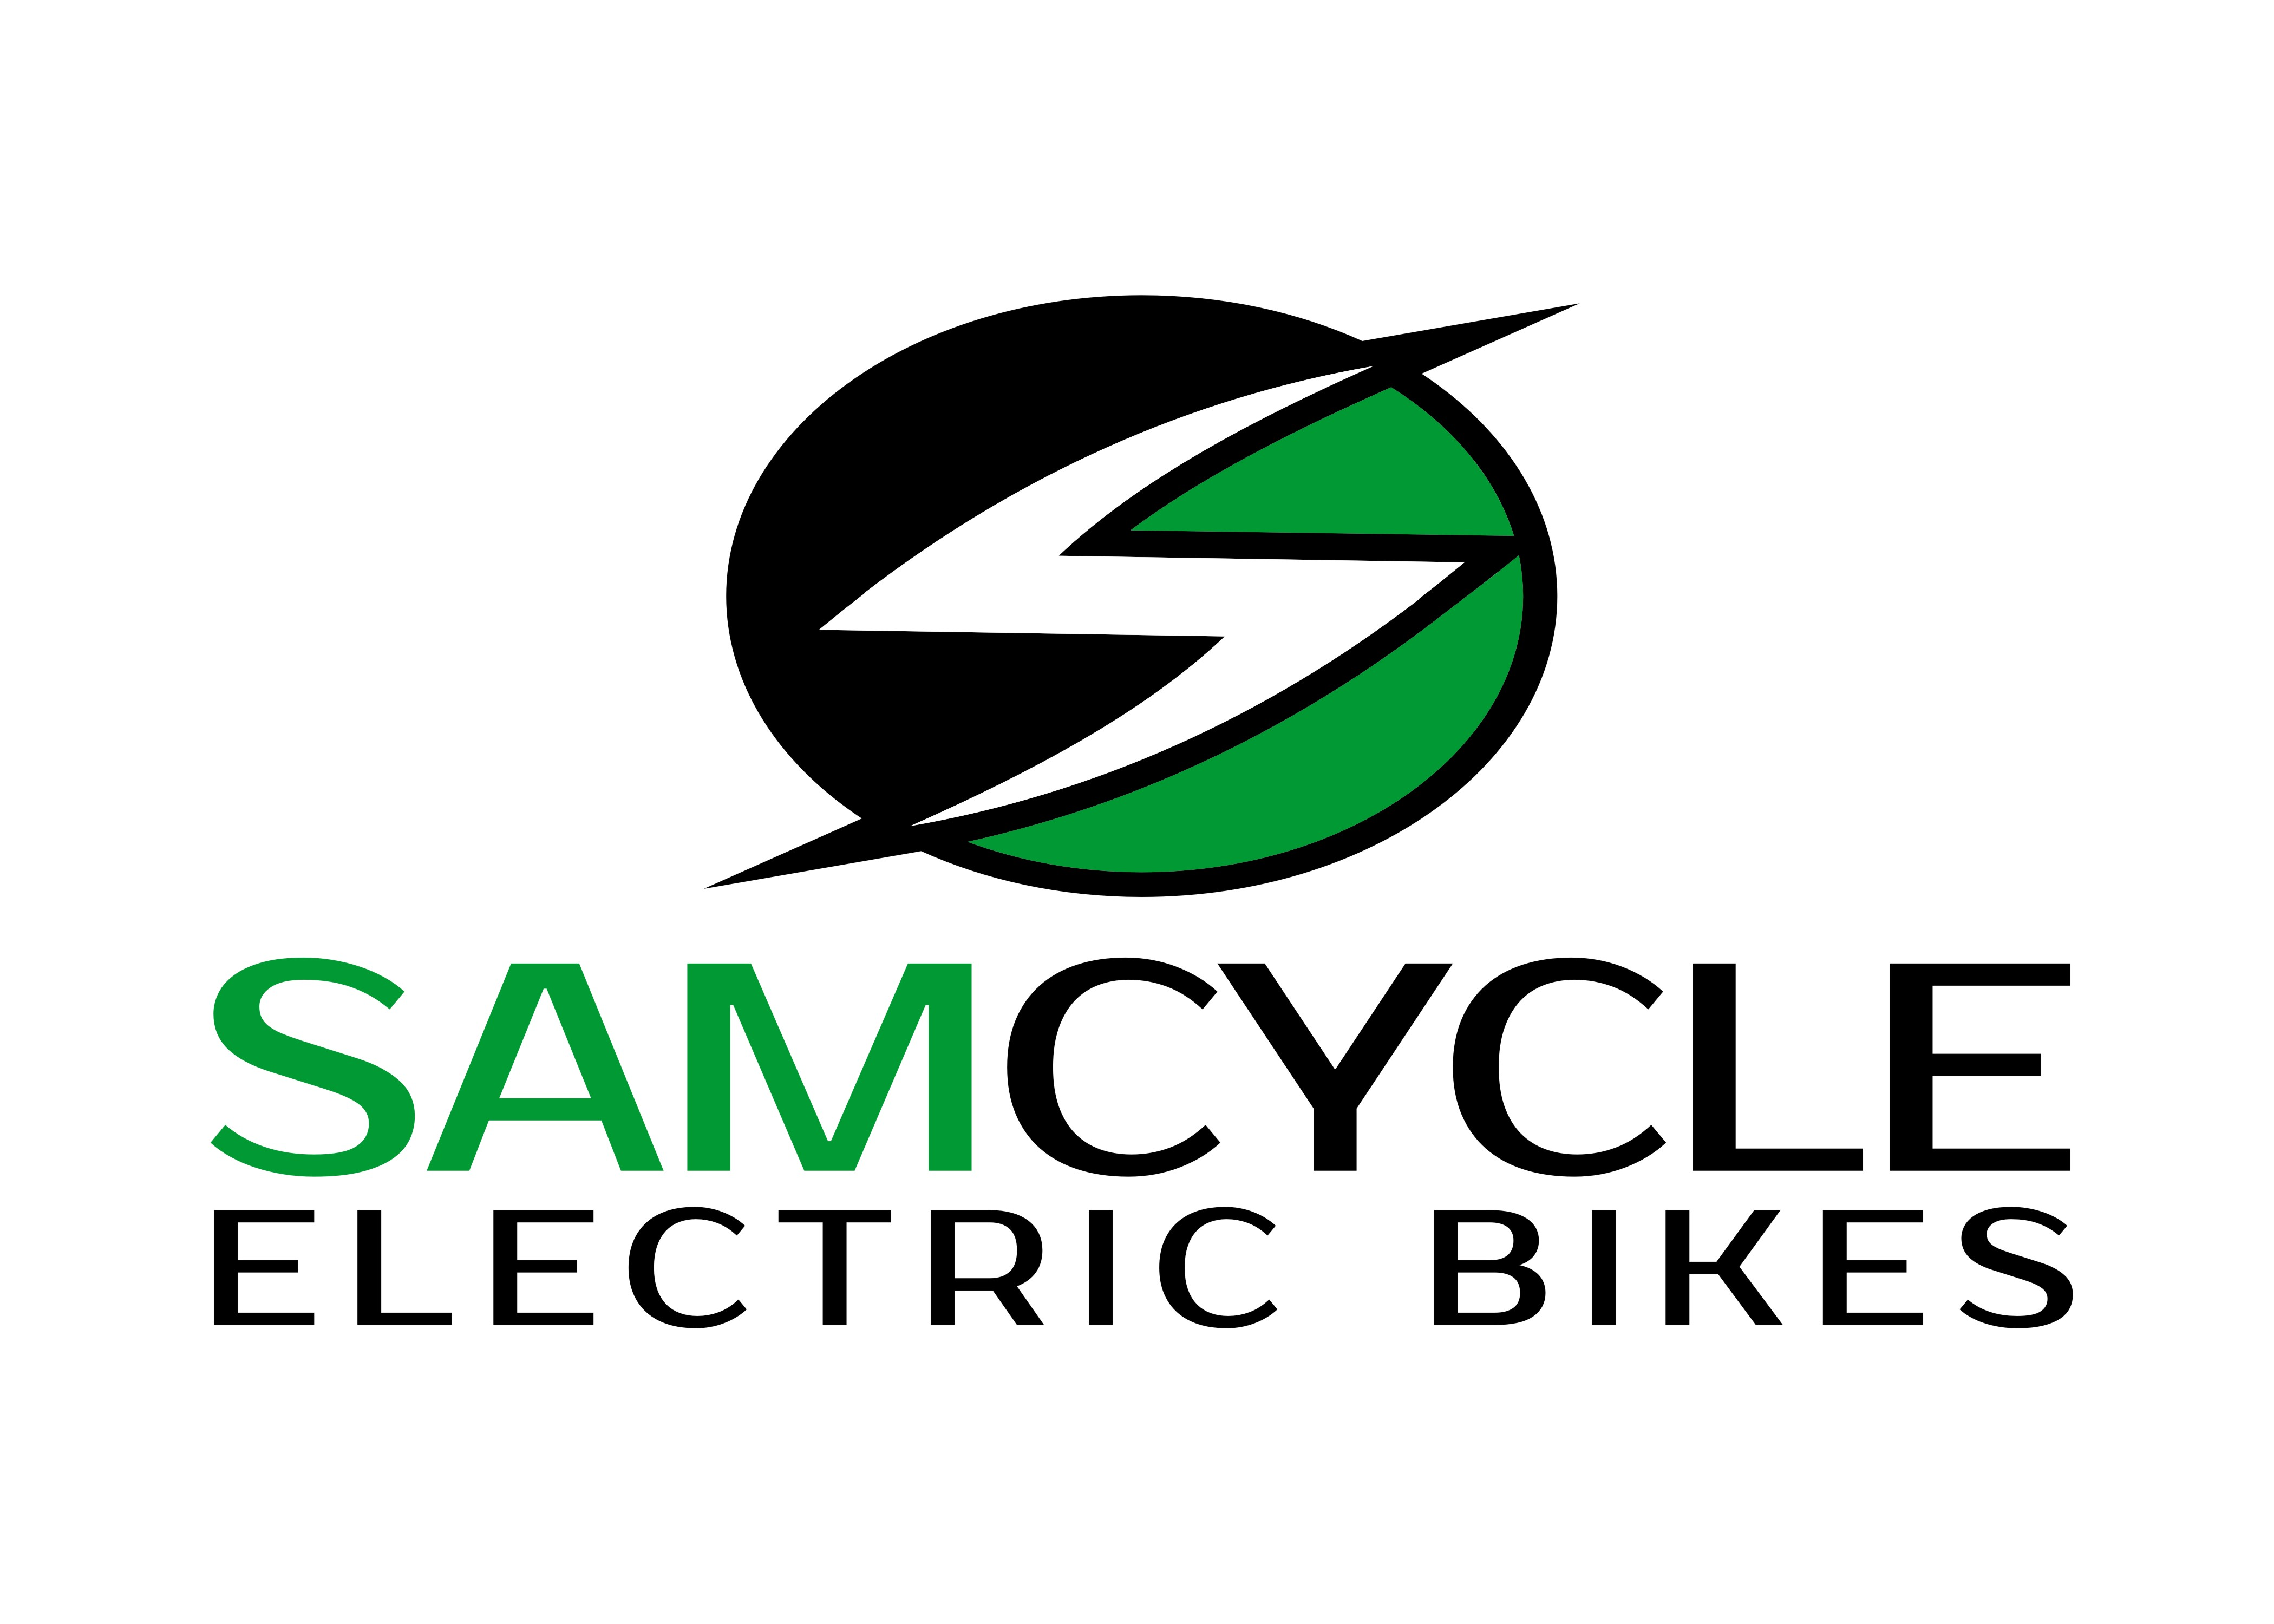 Samcycle Electric Bikes